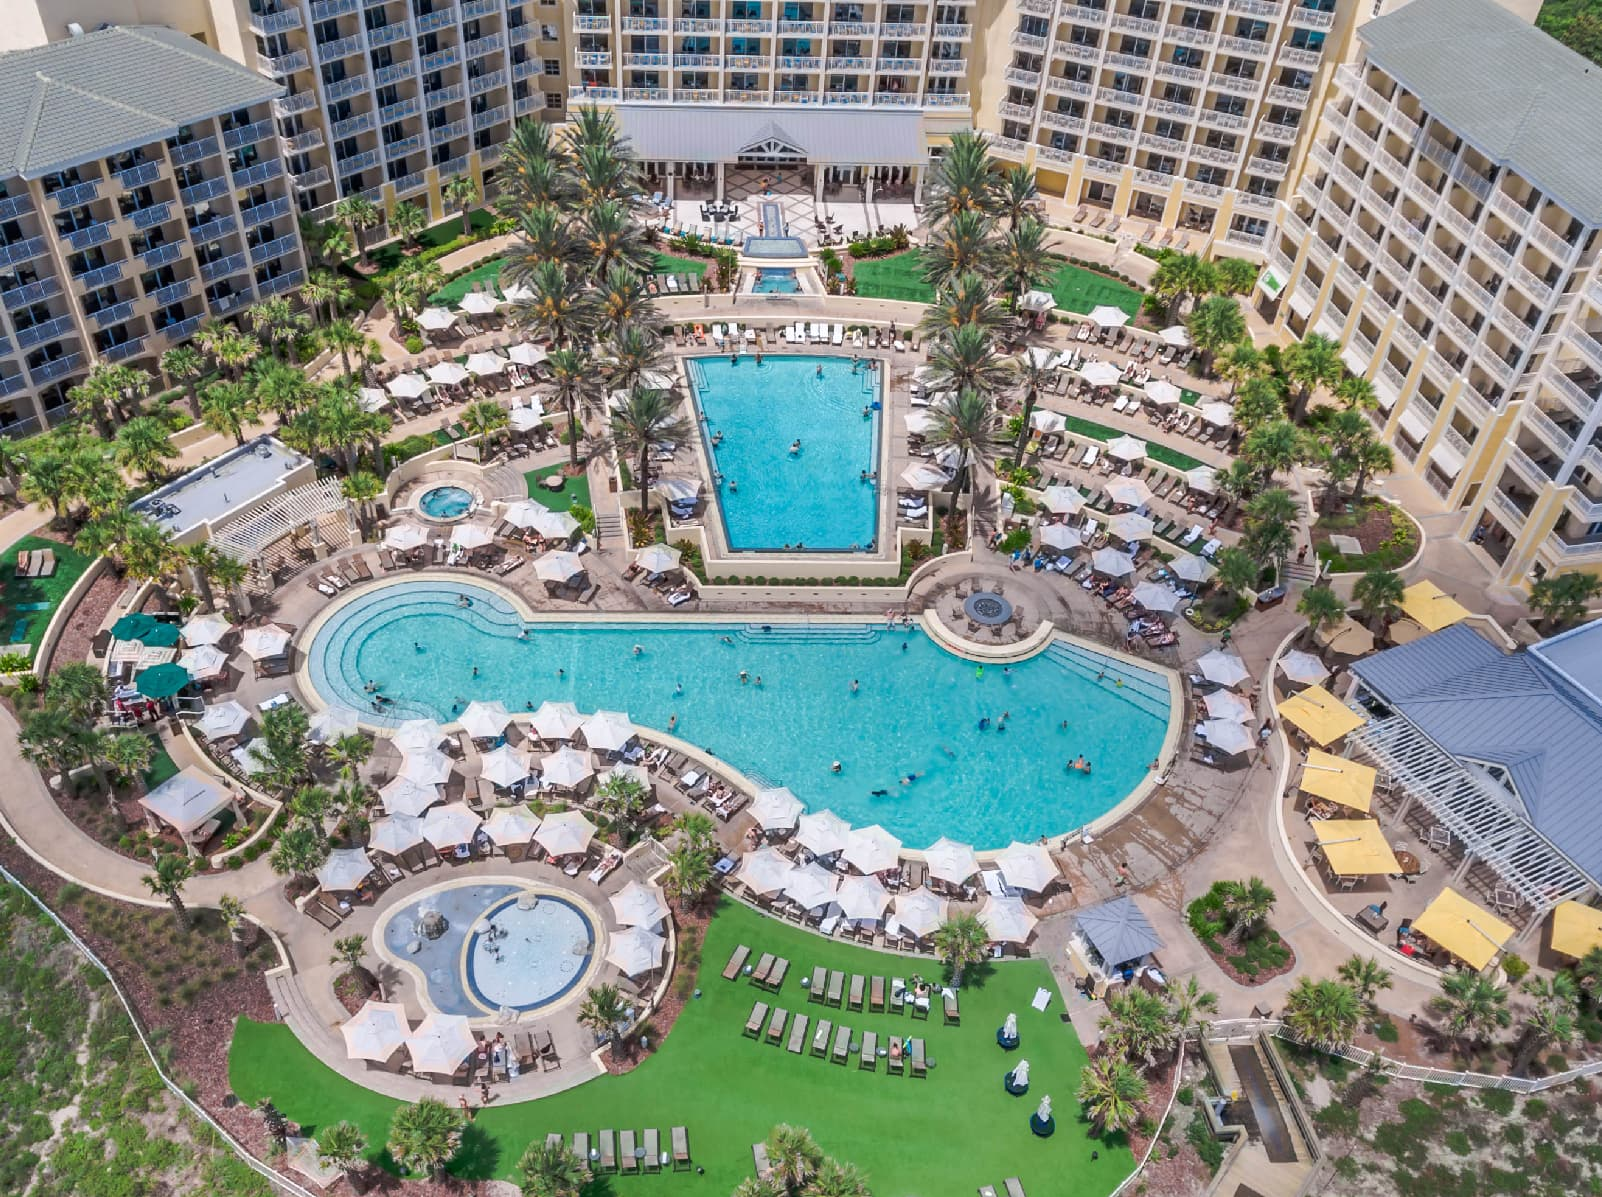 Omni Amelia Island Plantation Resort - one of the best tennis resorts for your tennis holidays in Florida